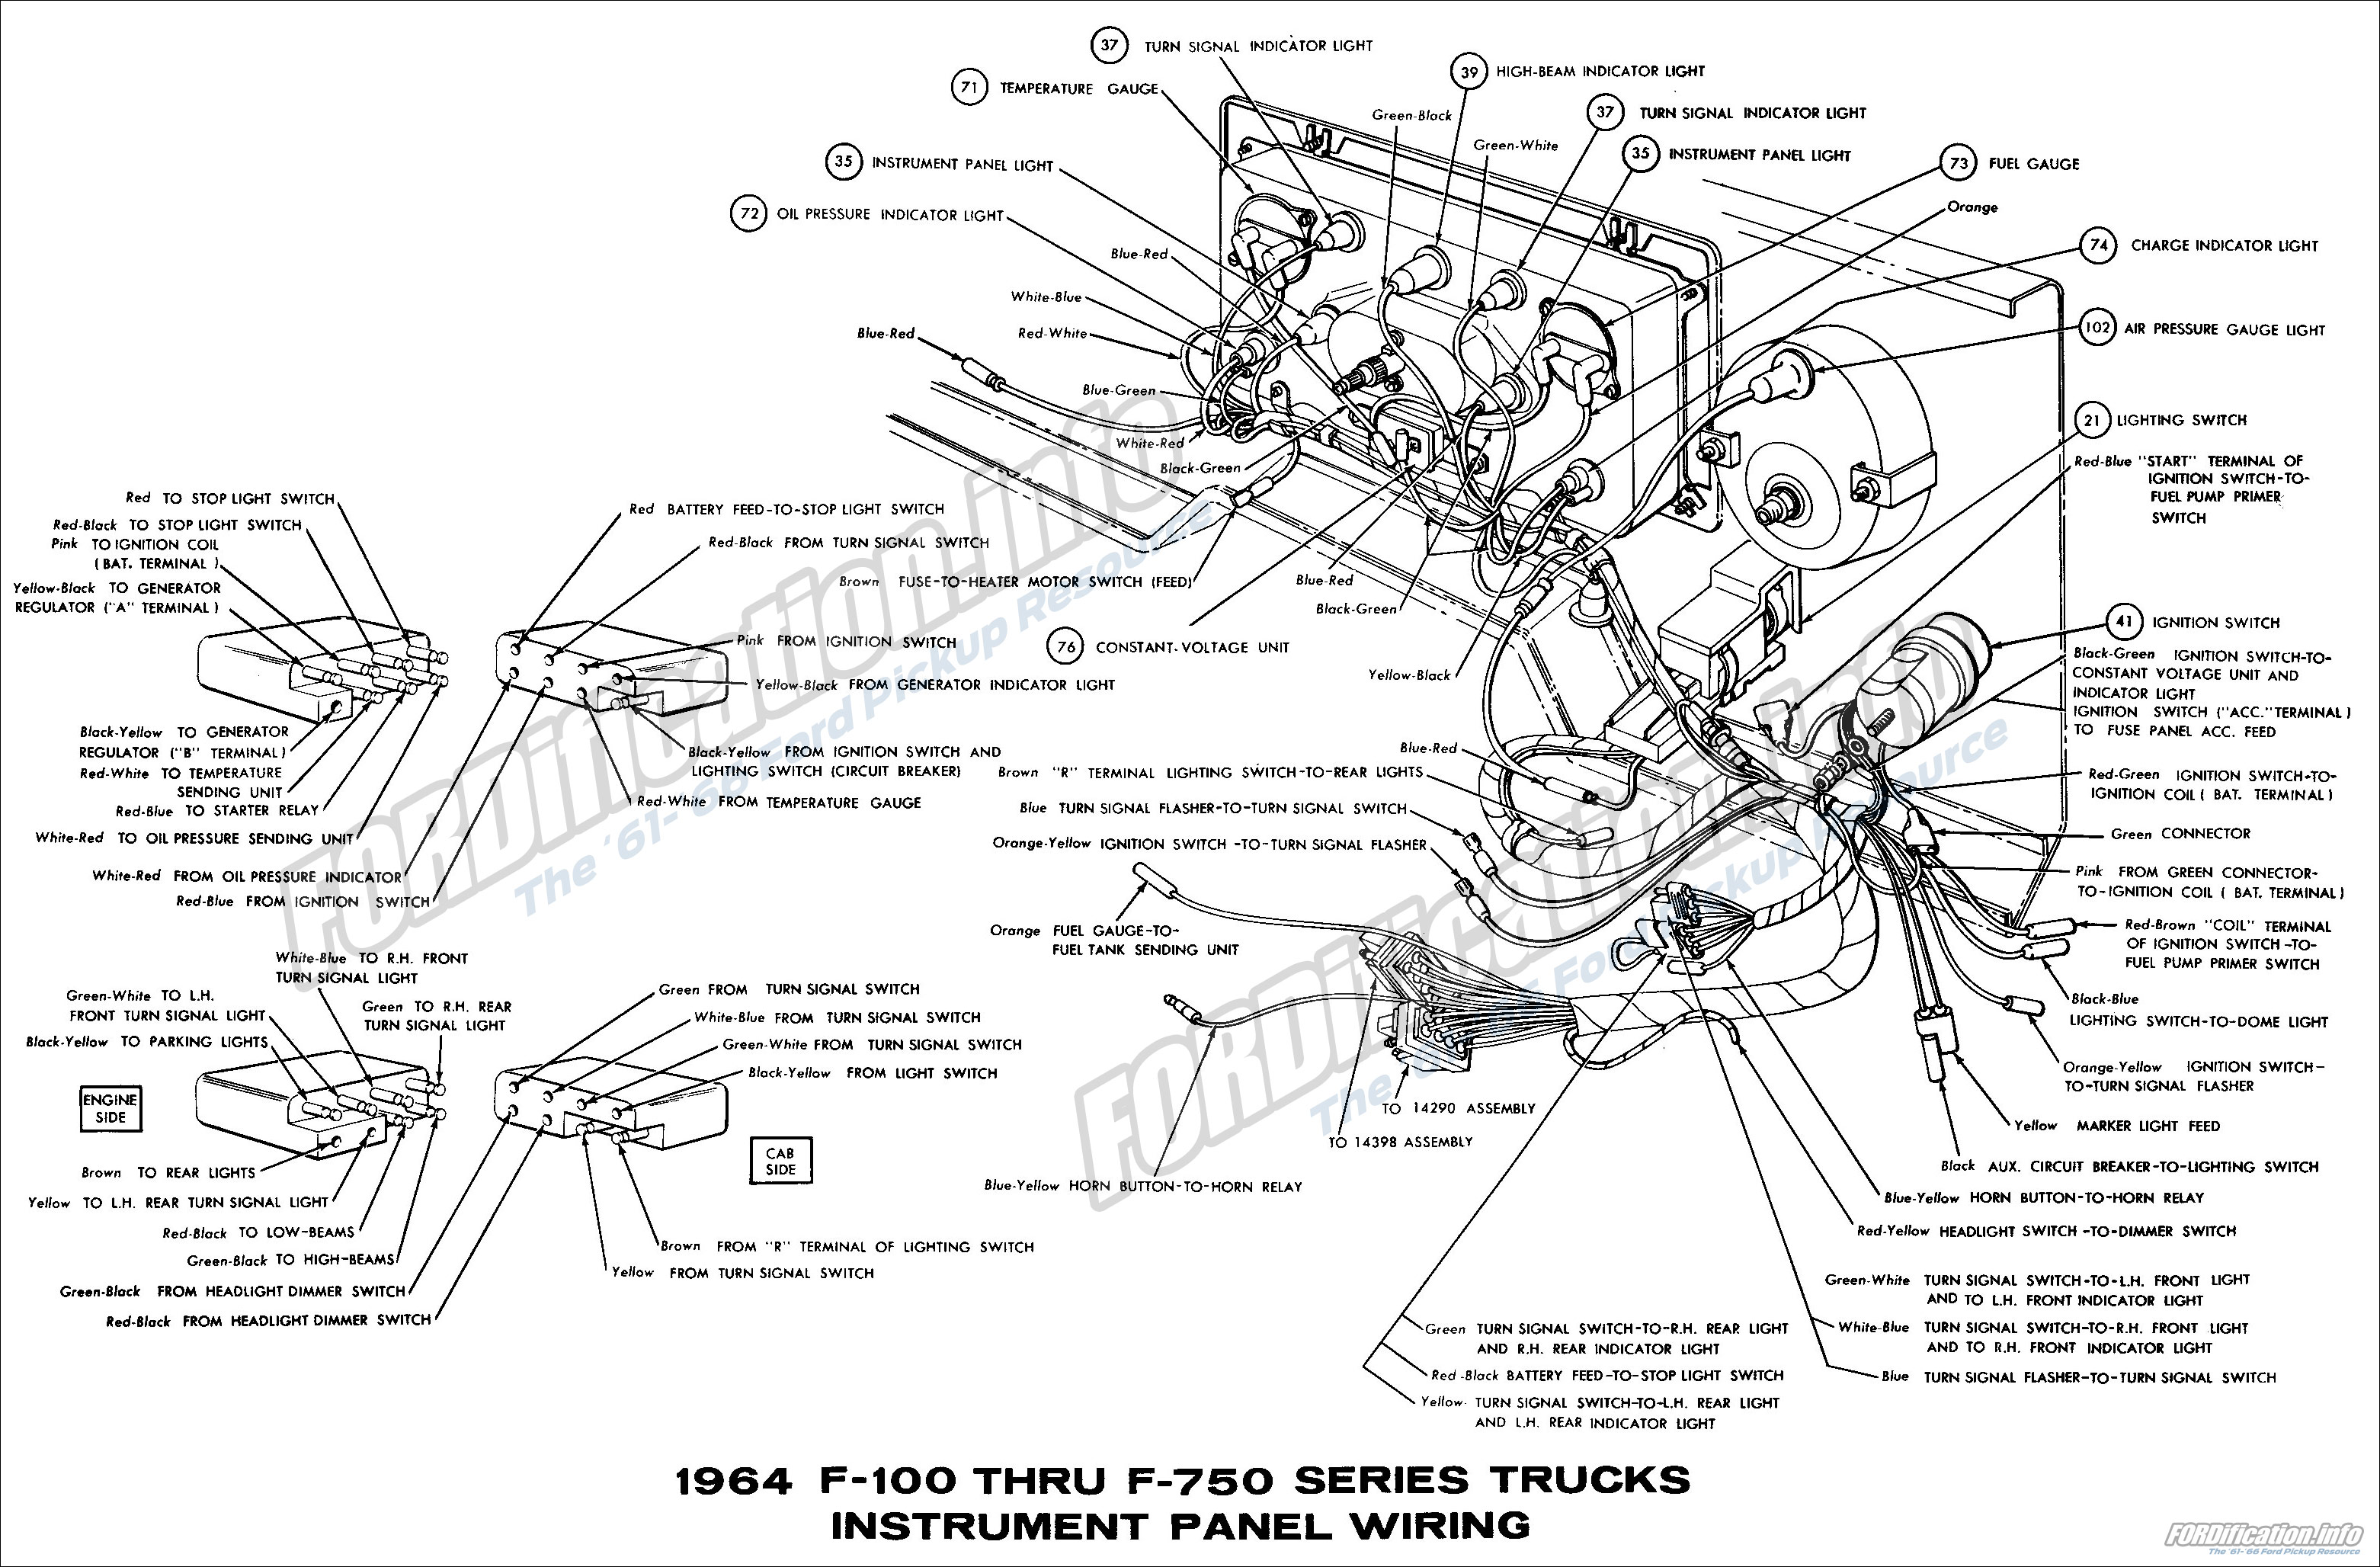 1964 F100 thru F750 Series Trucks